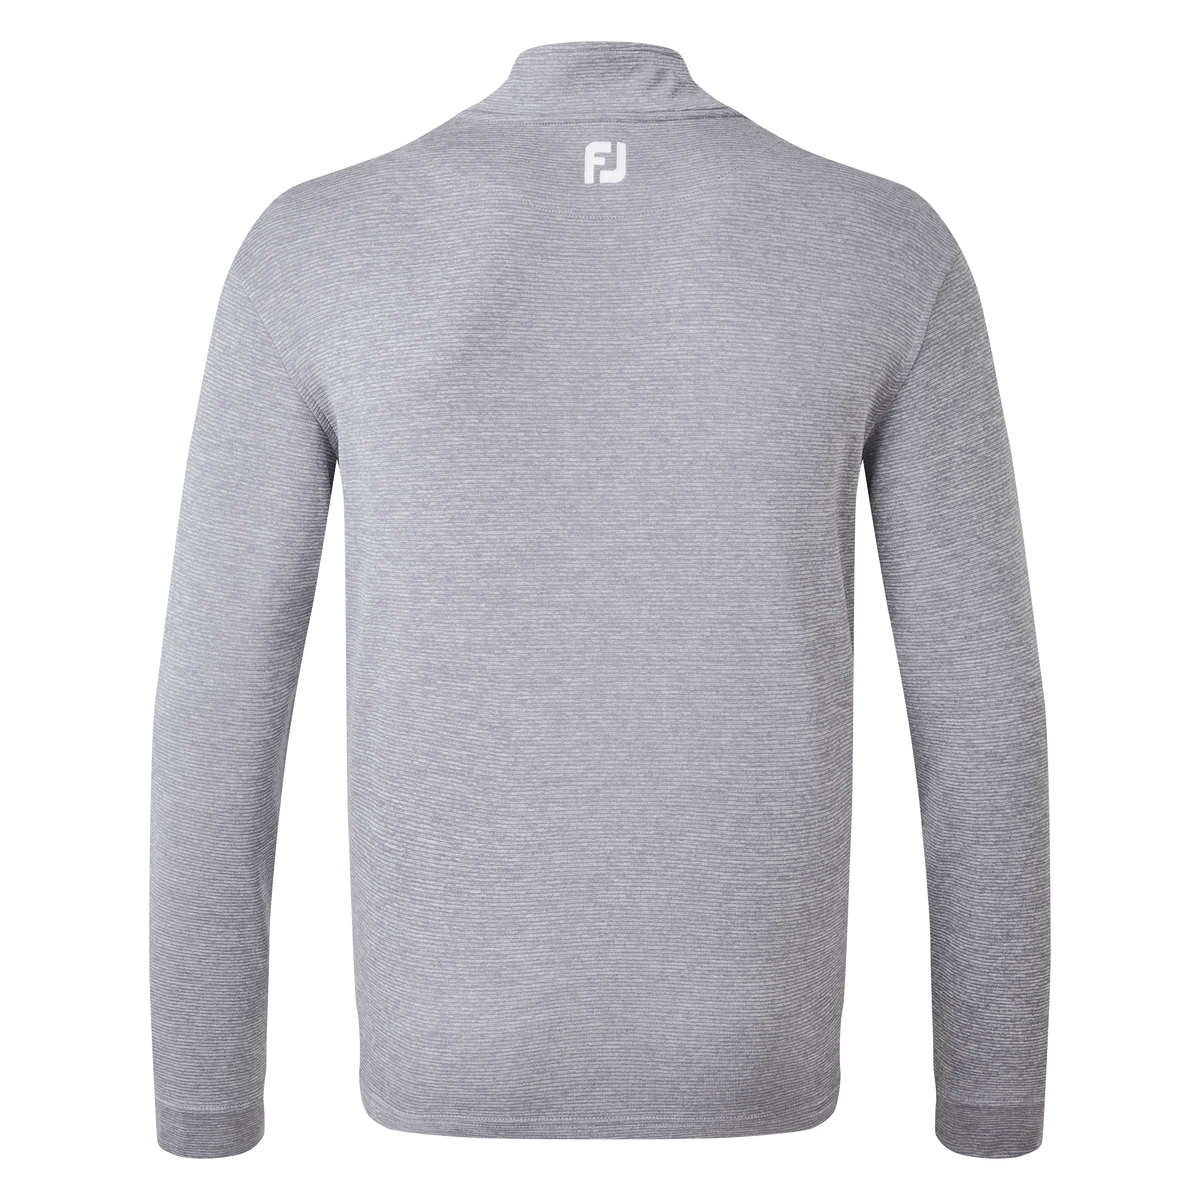 Melierter Chill-Out Pullover